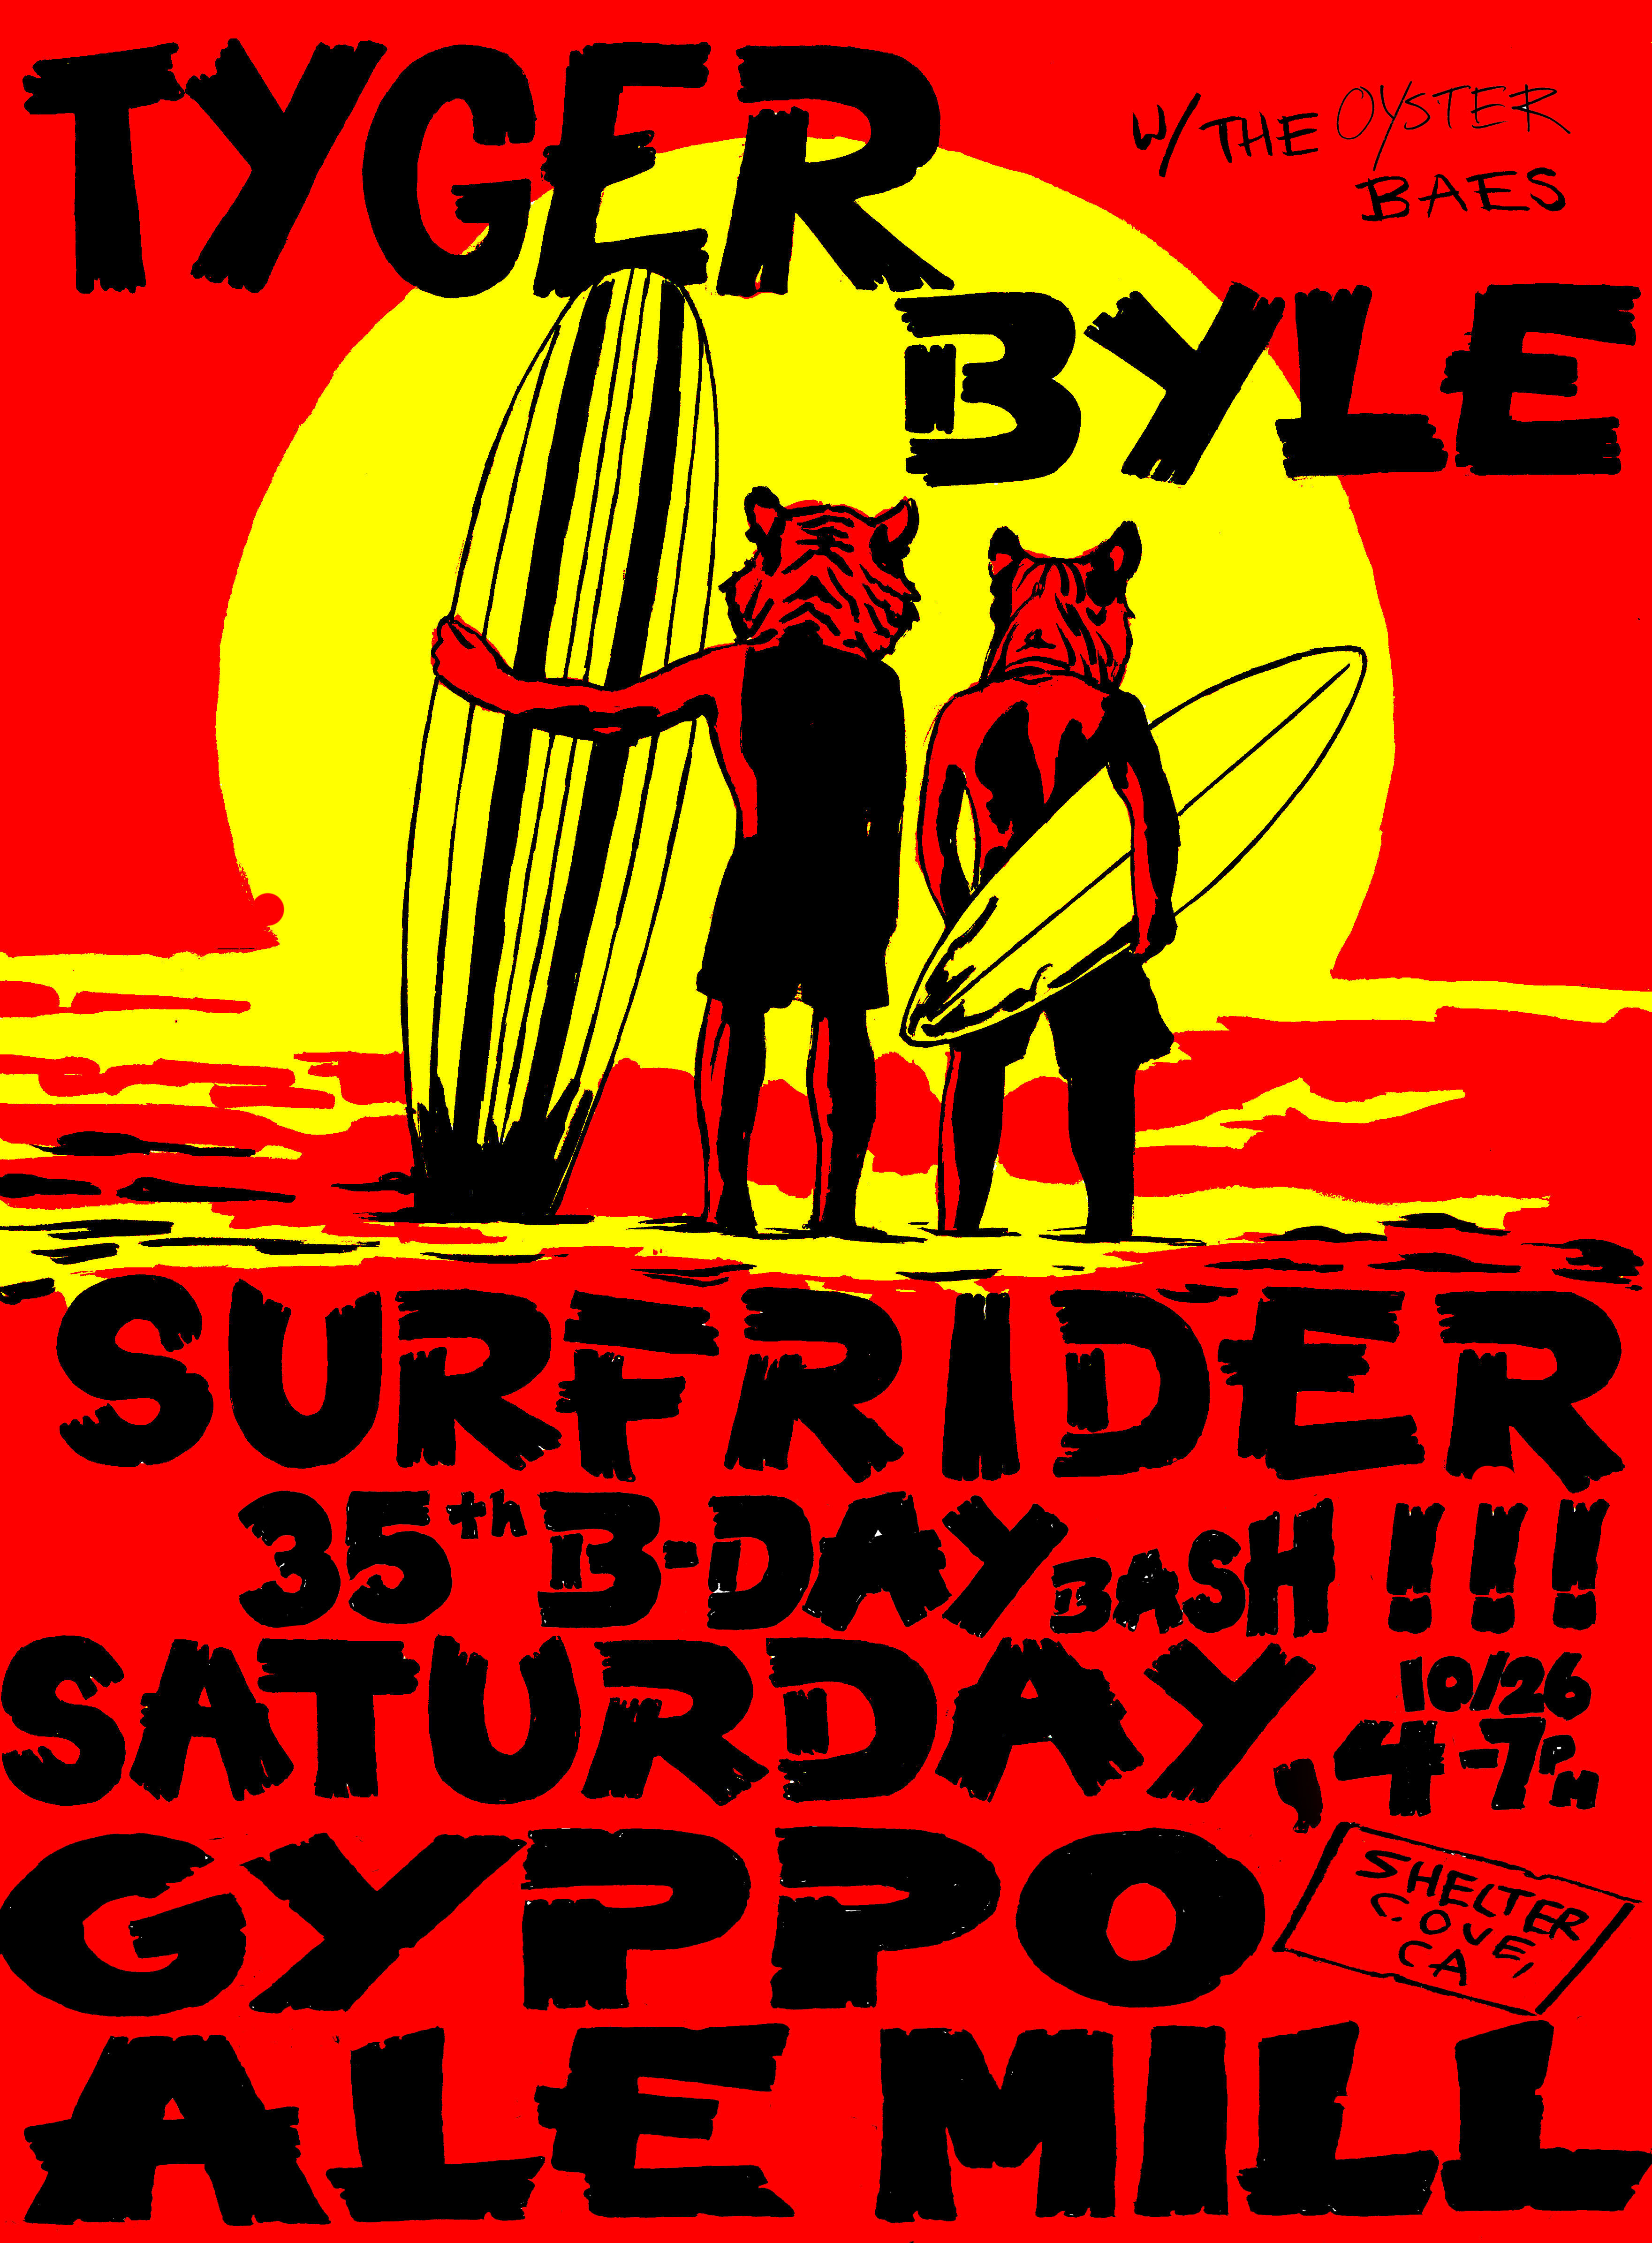 Surfrider 35th Birthday Bash